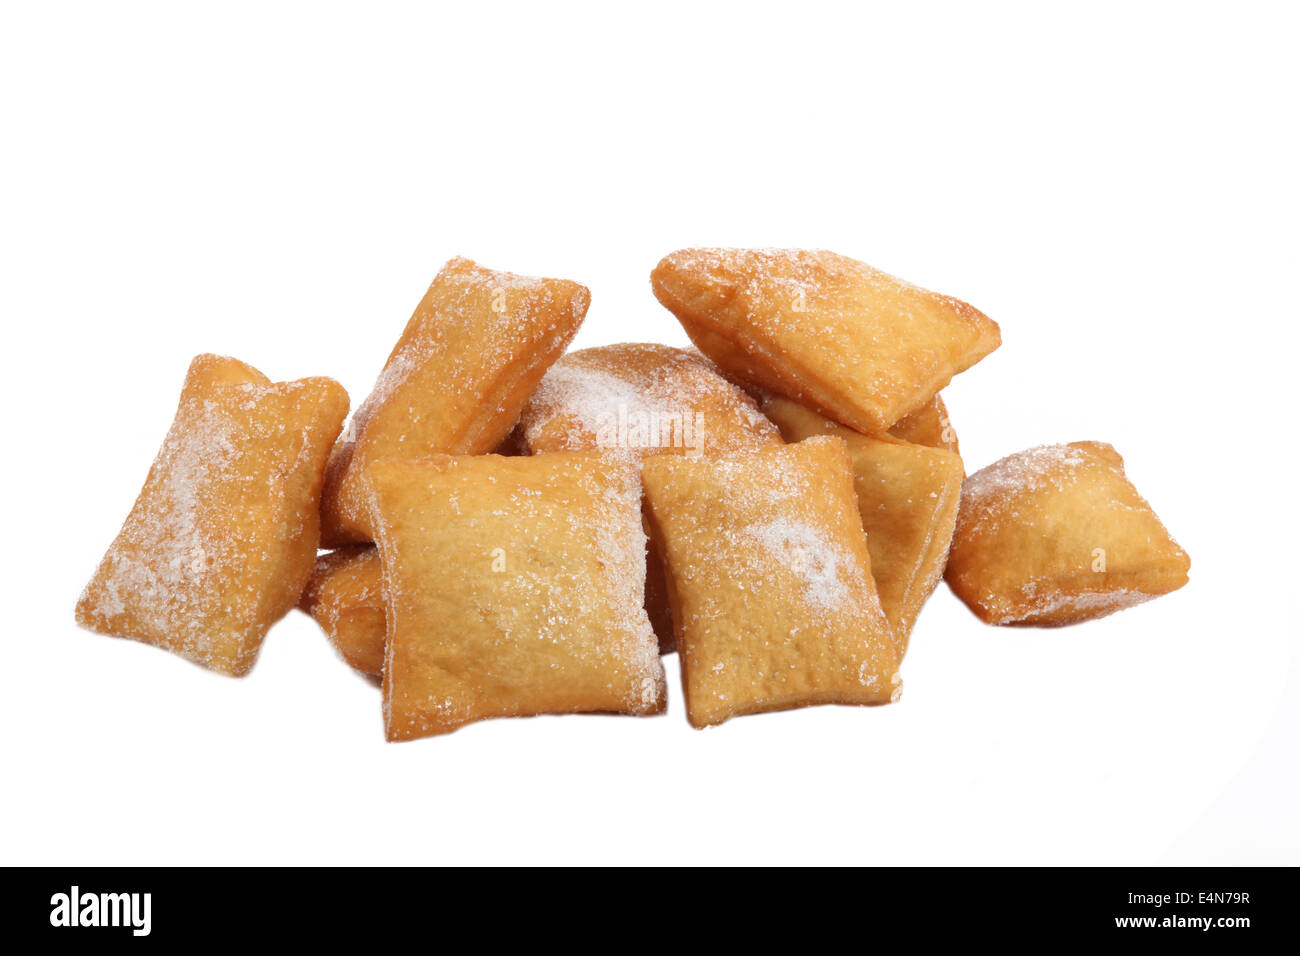 Sugar dusted confectioneries - Stock Image